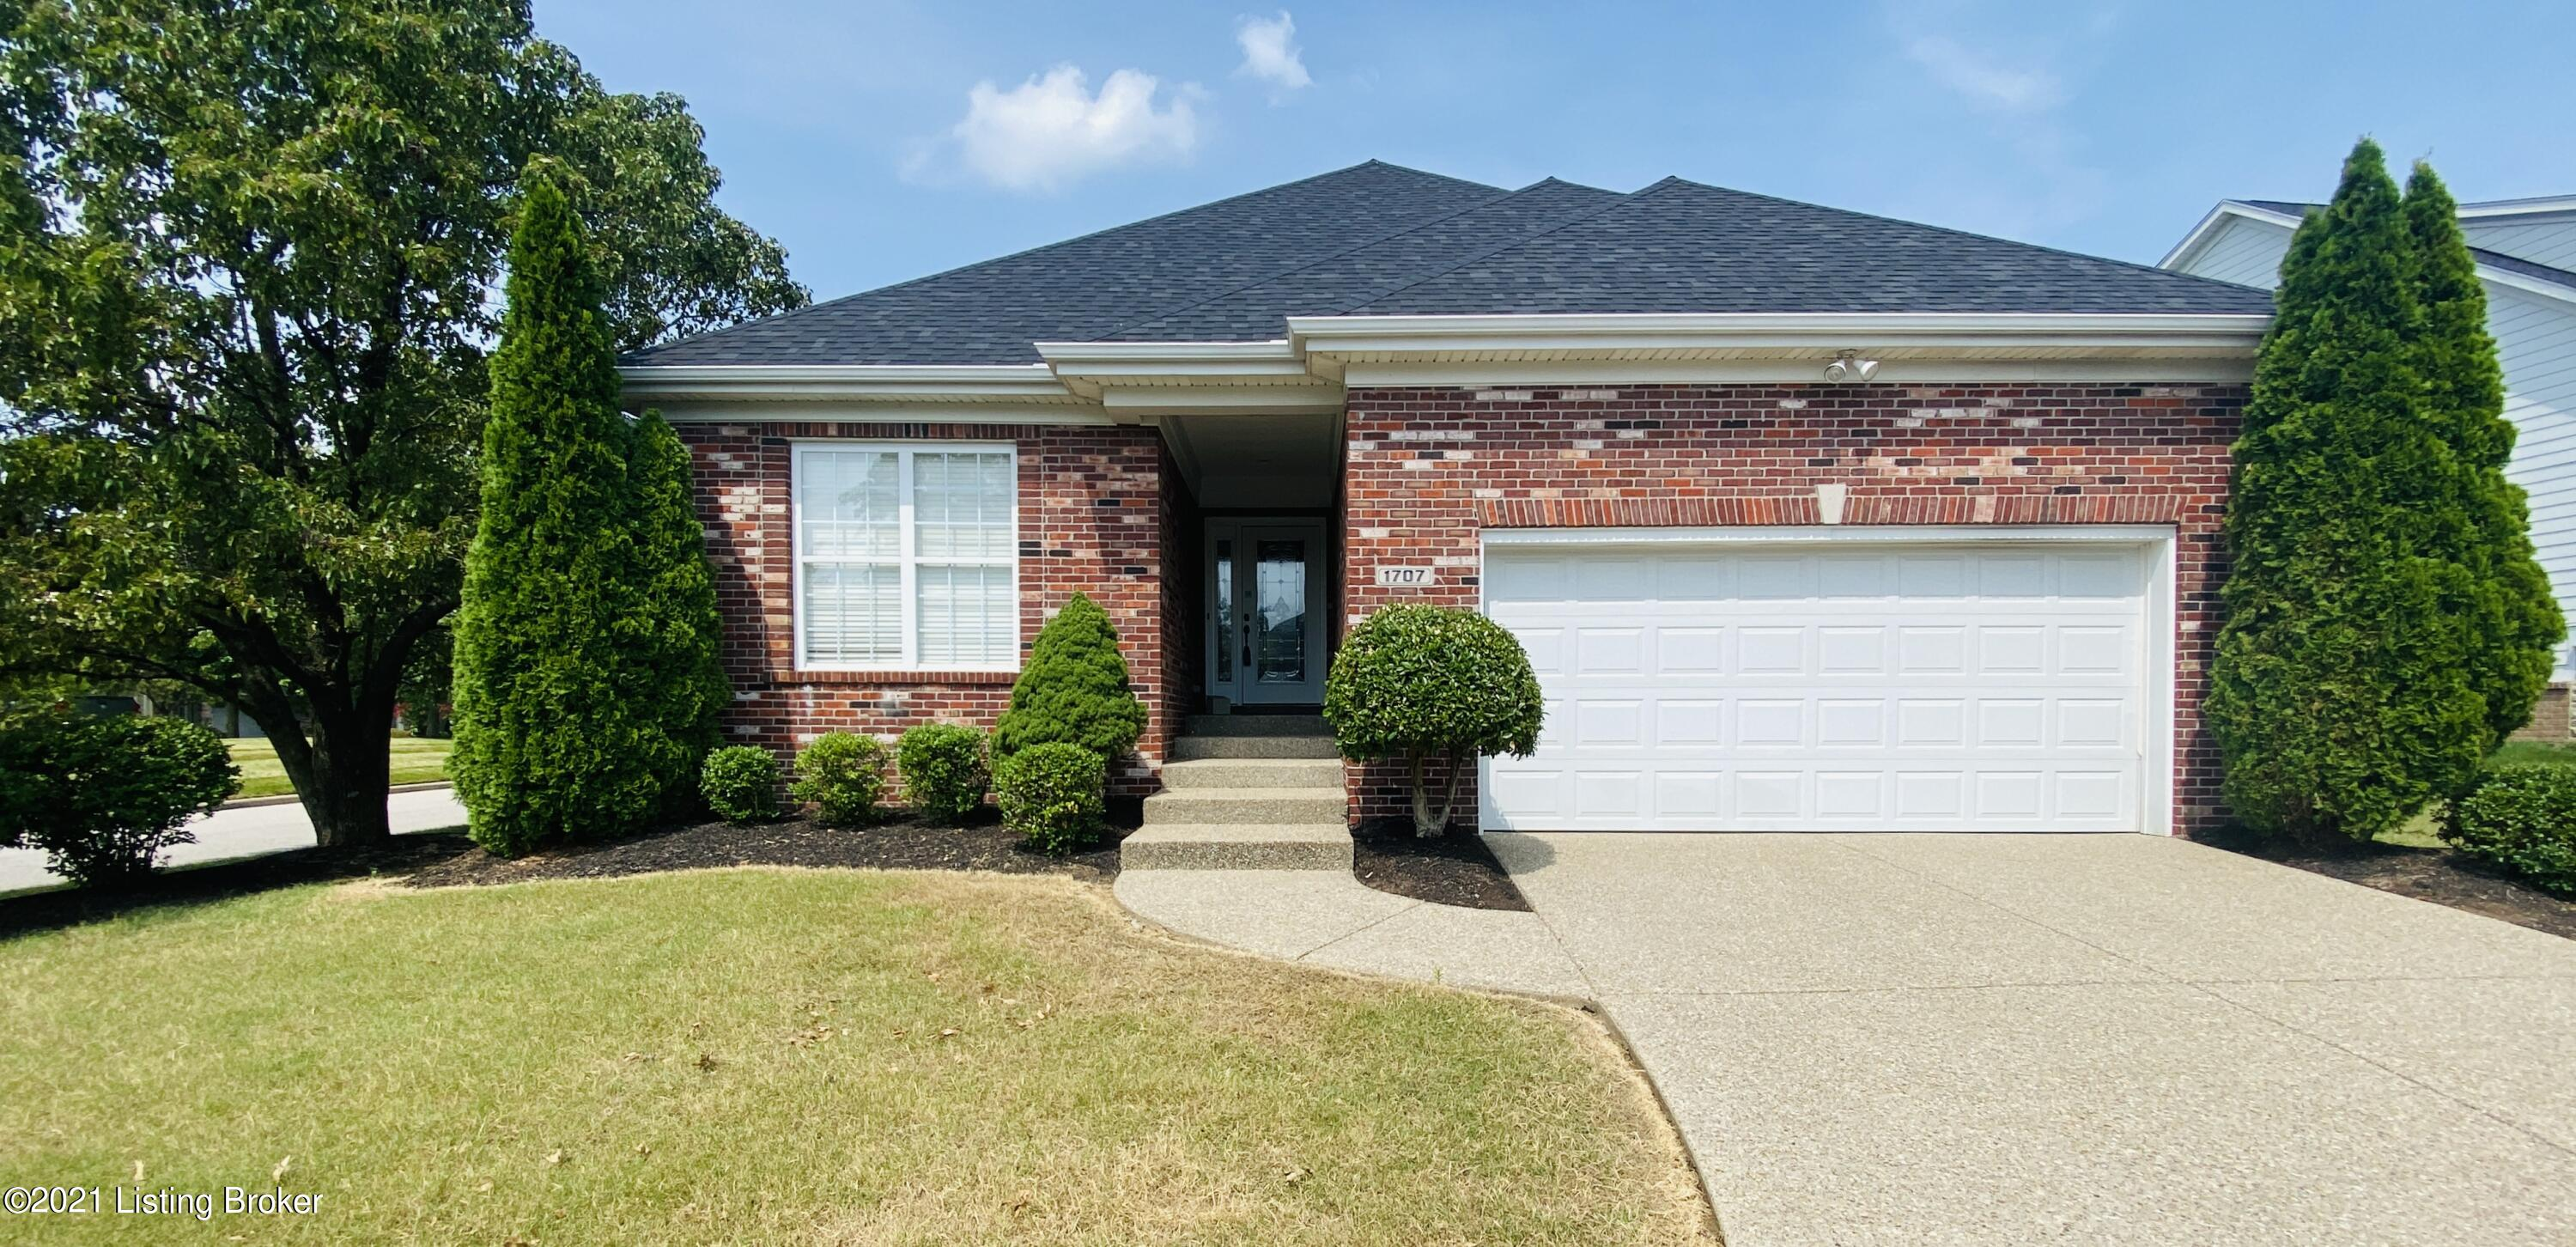 1707 Perry Ct